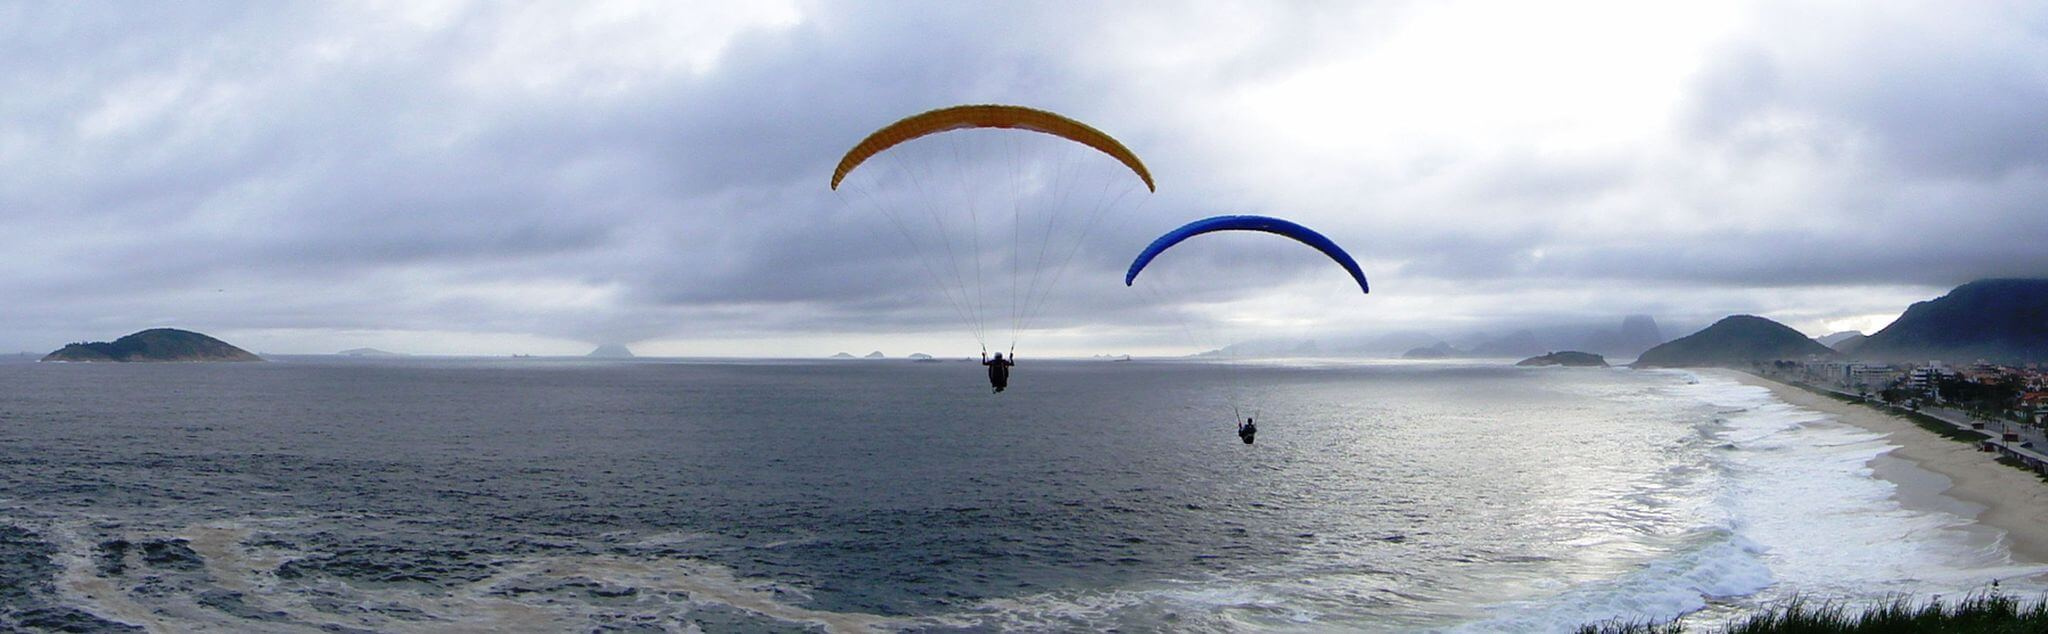 Paragliding in Highland